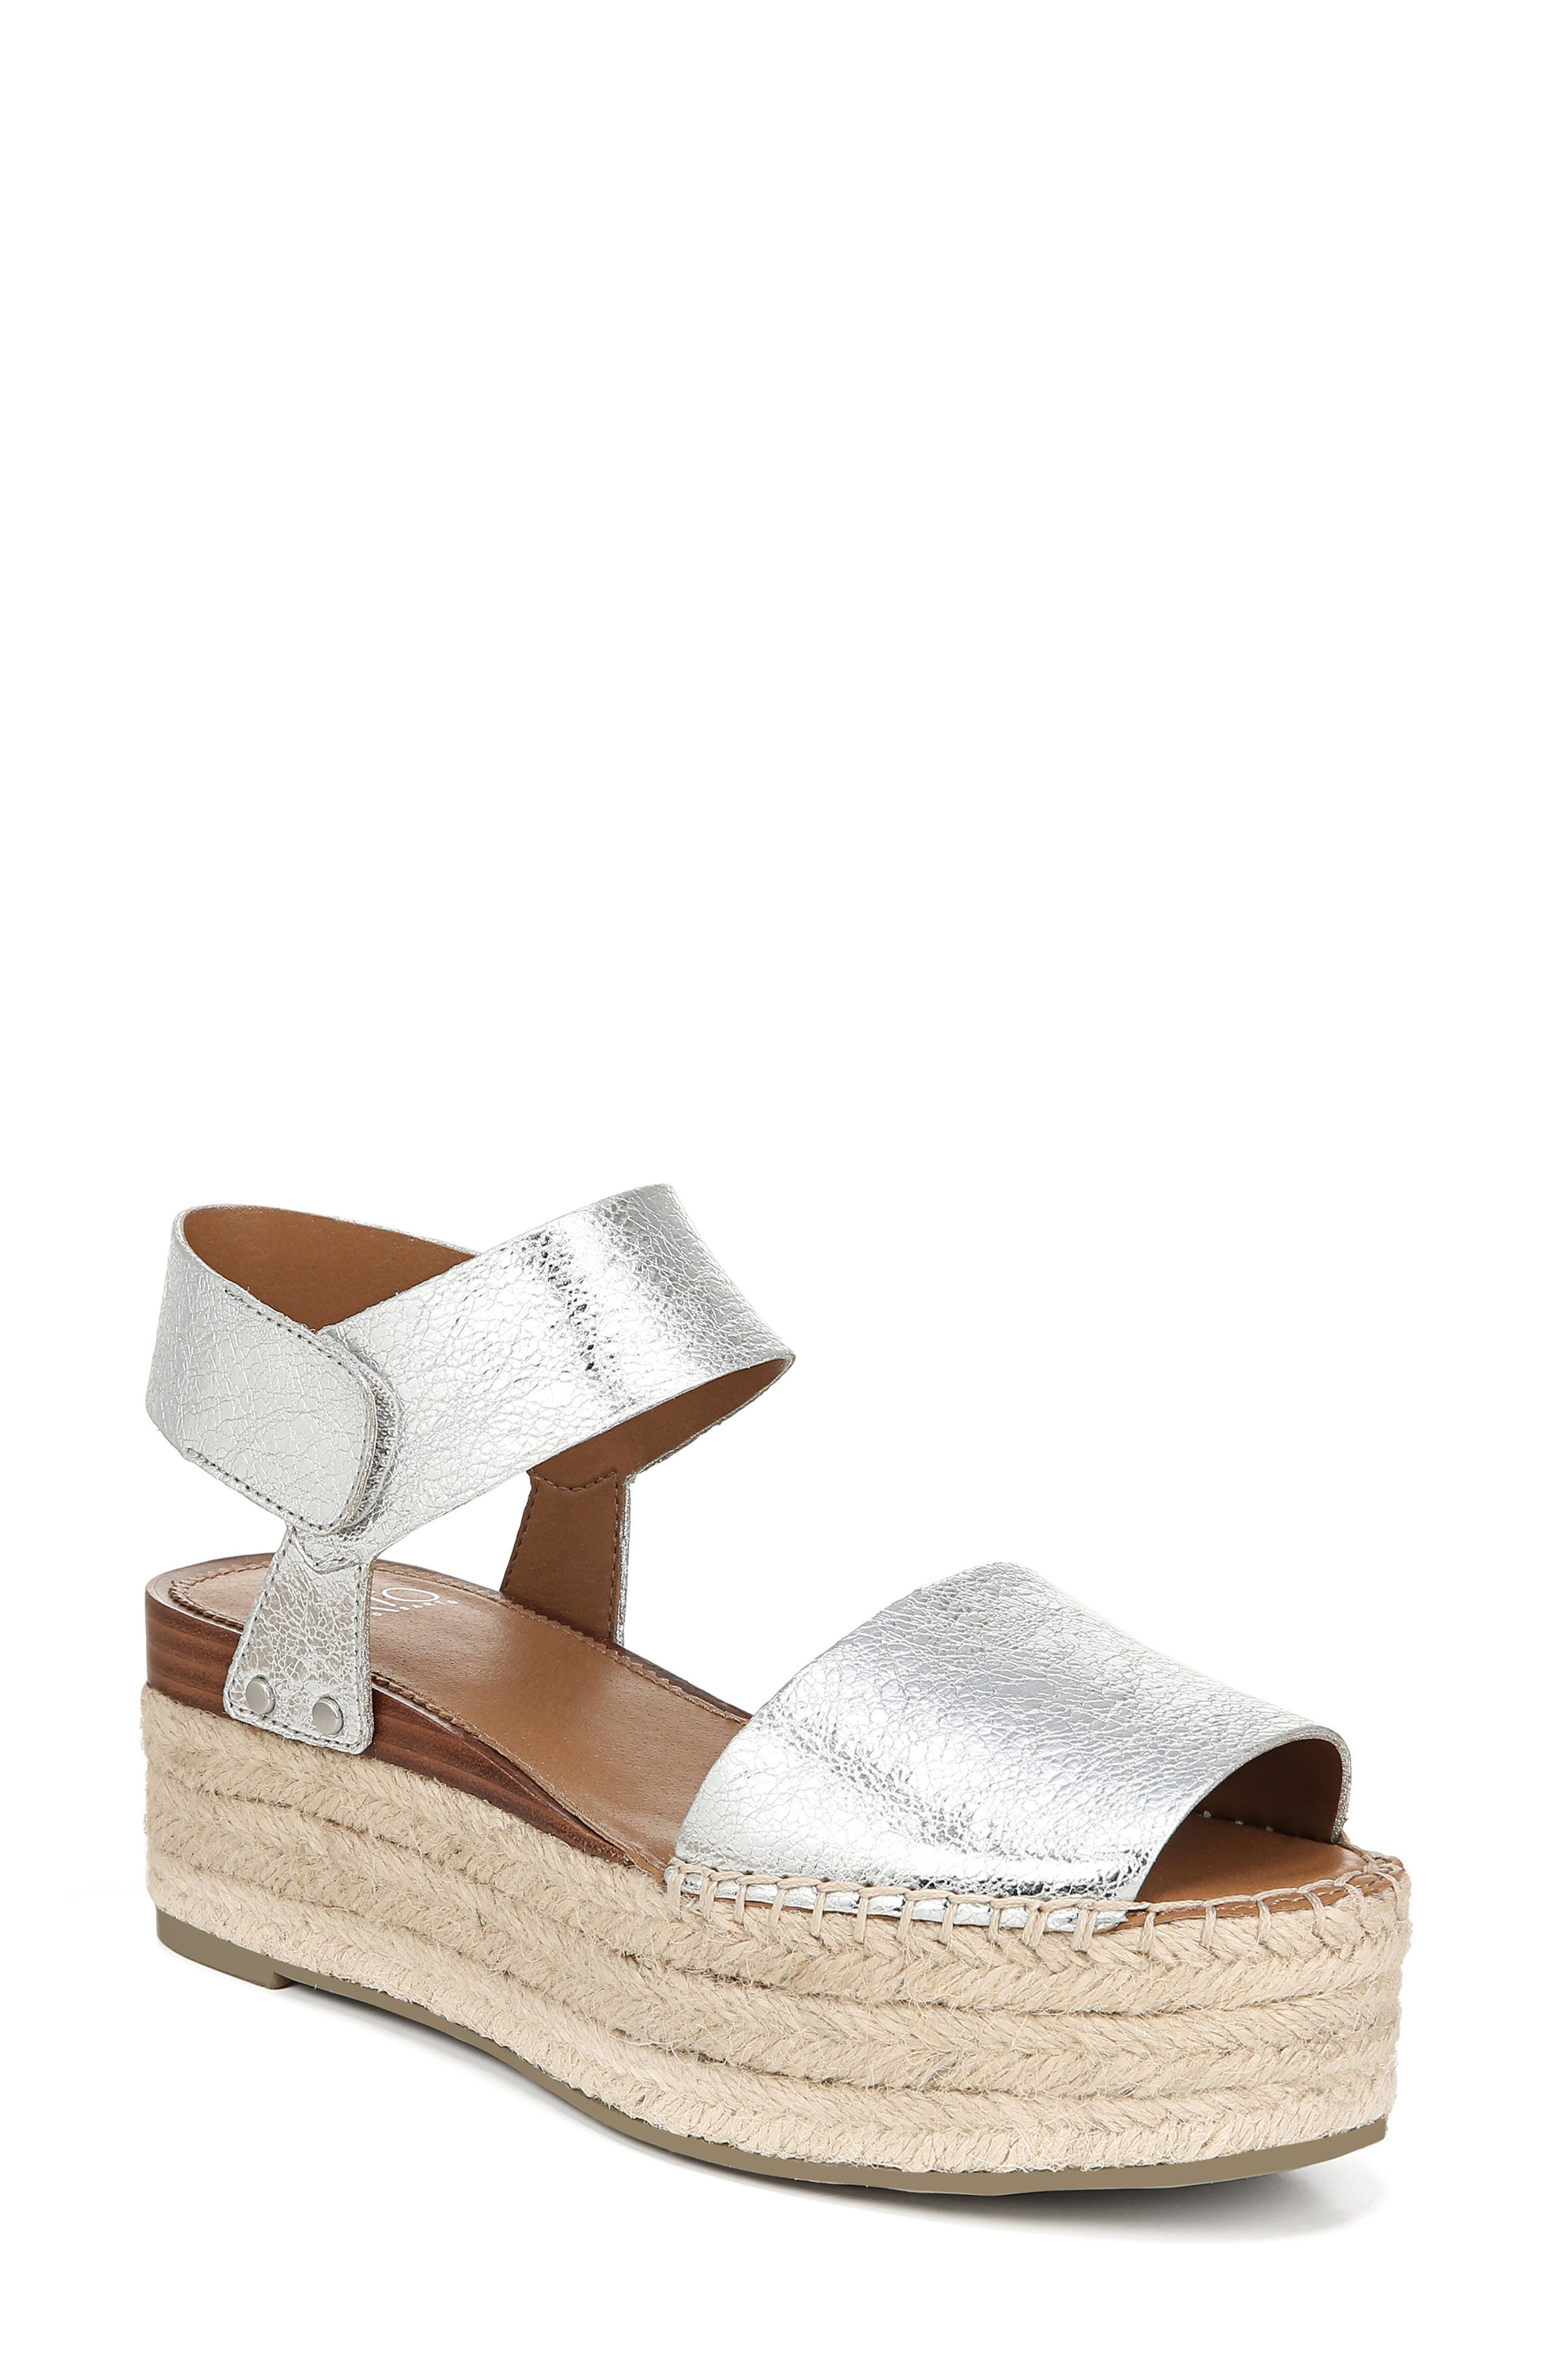 SARTO BY FRANCO SARTO Leo Platform Espadrille Sandal, Main, color, SILVER LEATHER